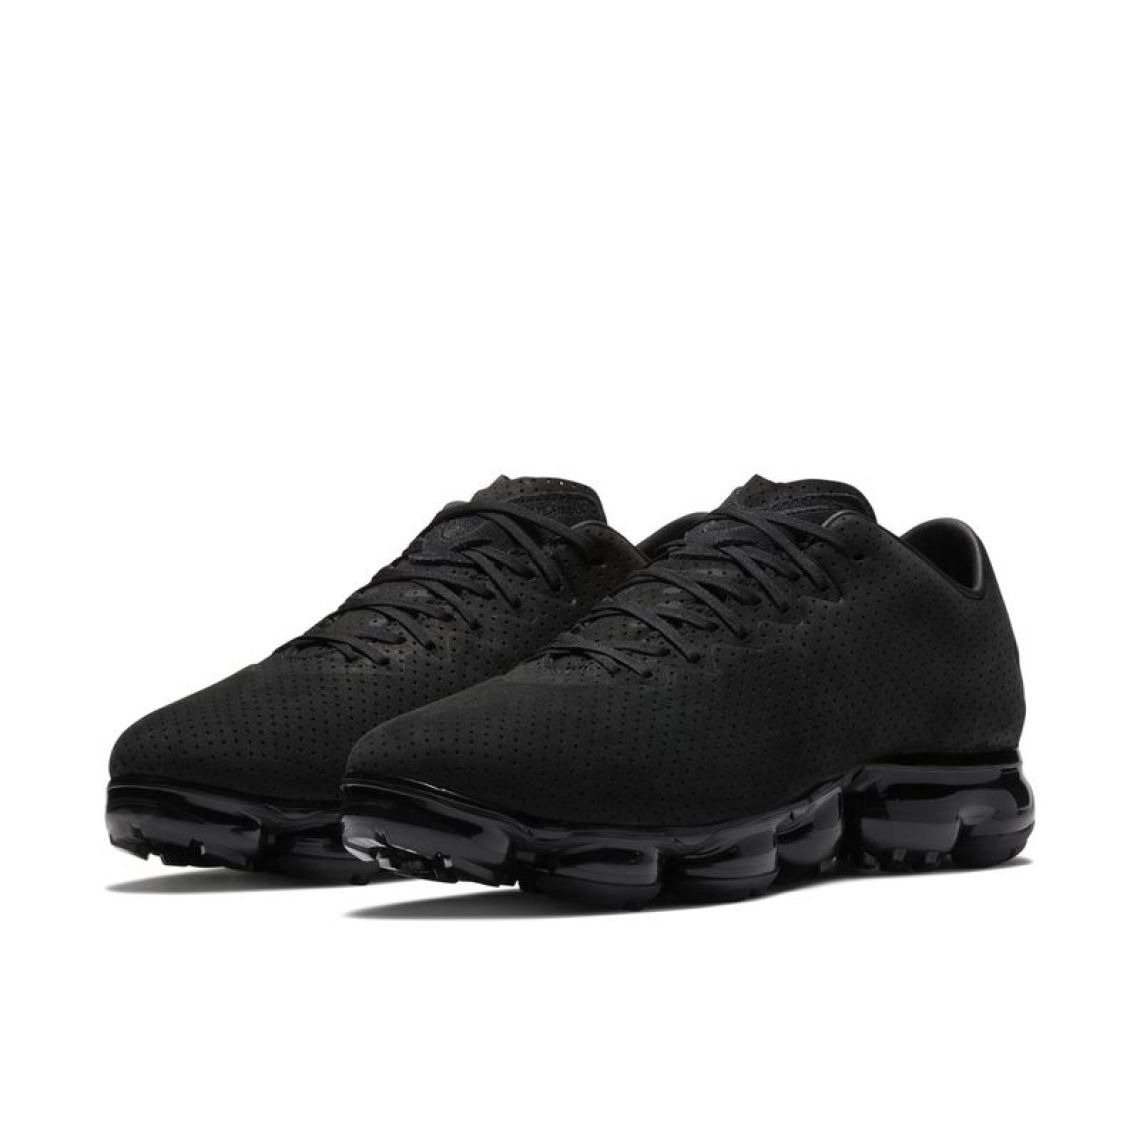 024189f188 Nike Air VaporMax Suede